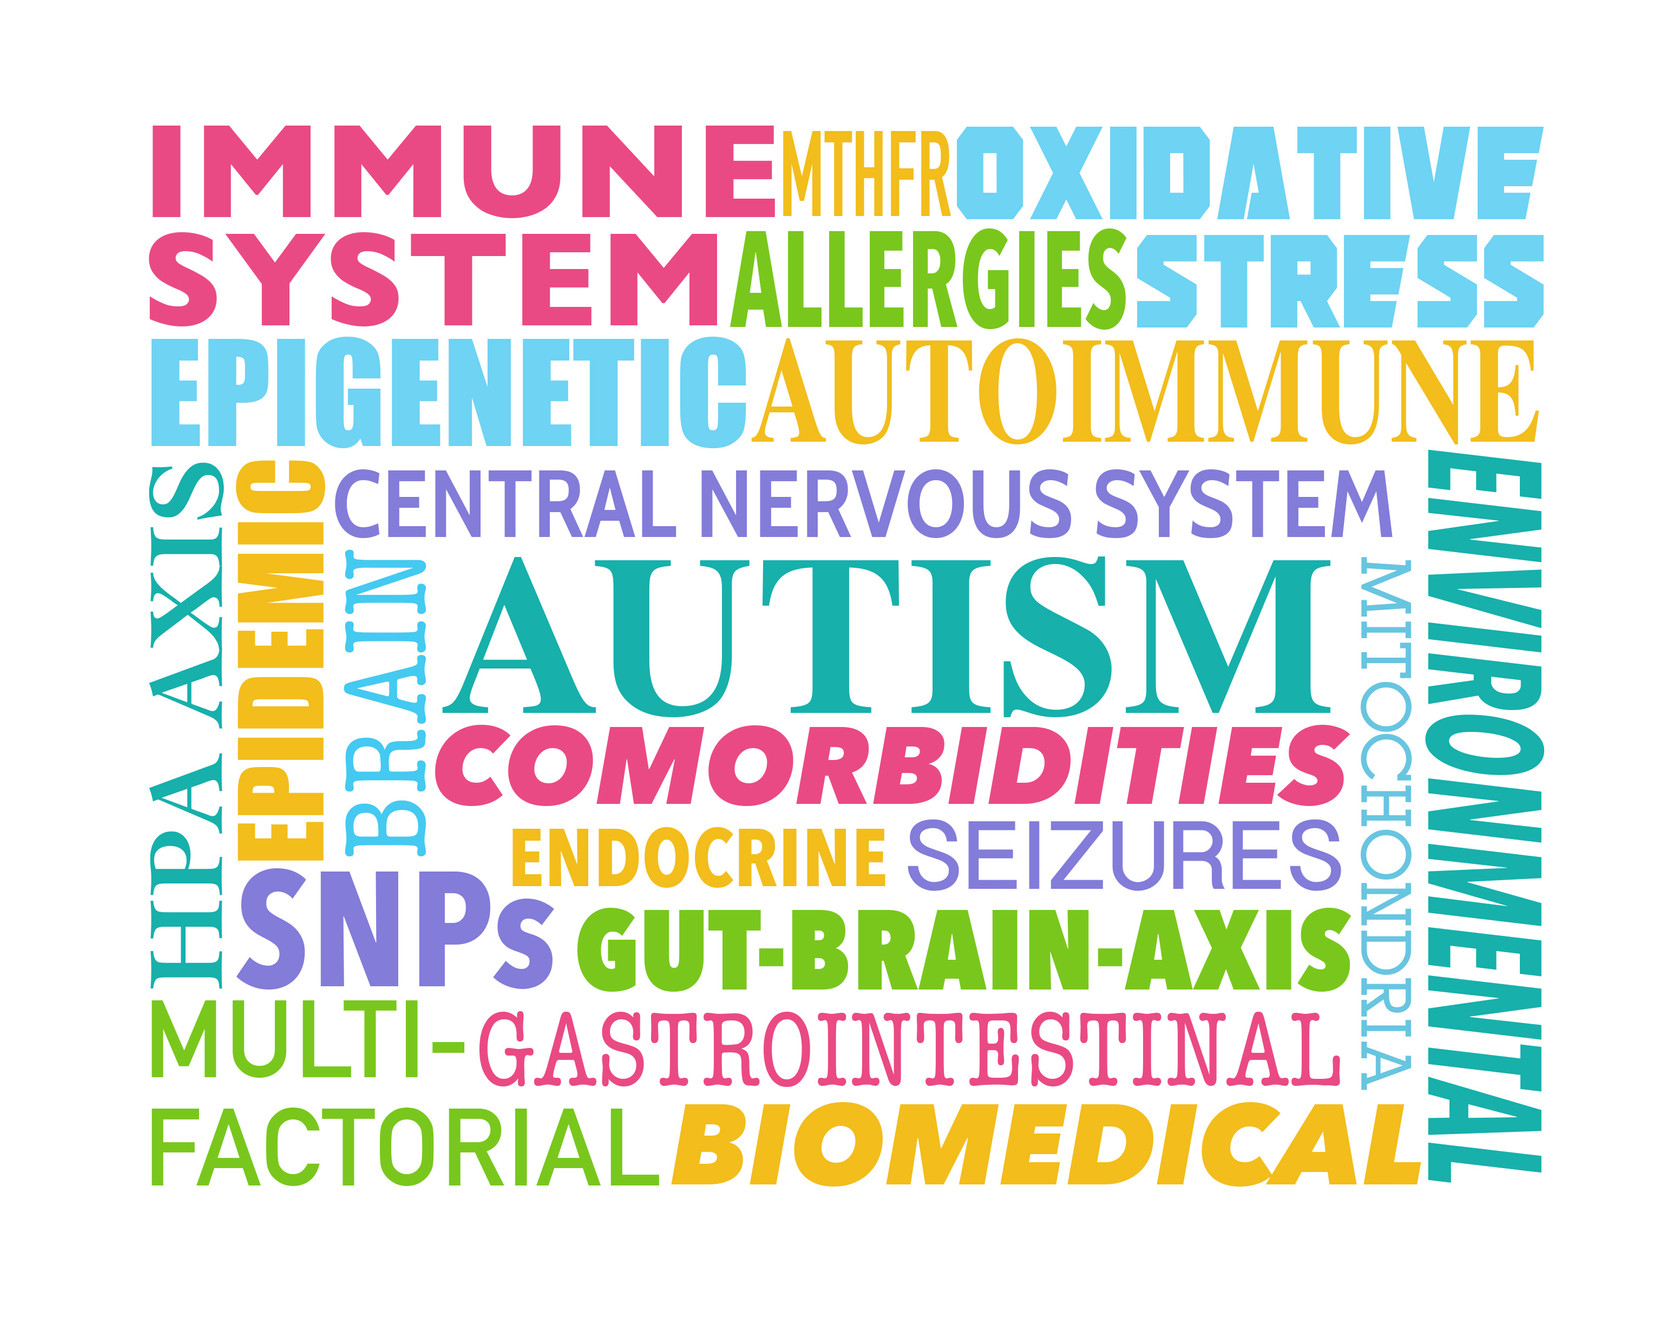 Autism and GI | autism- biological findings in autism